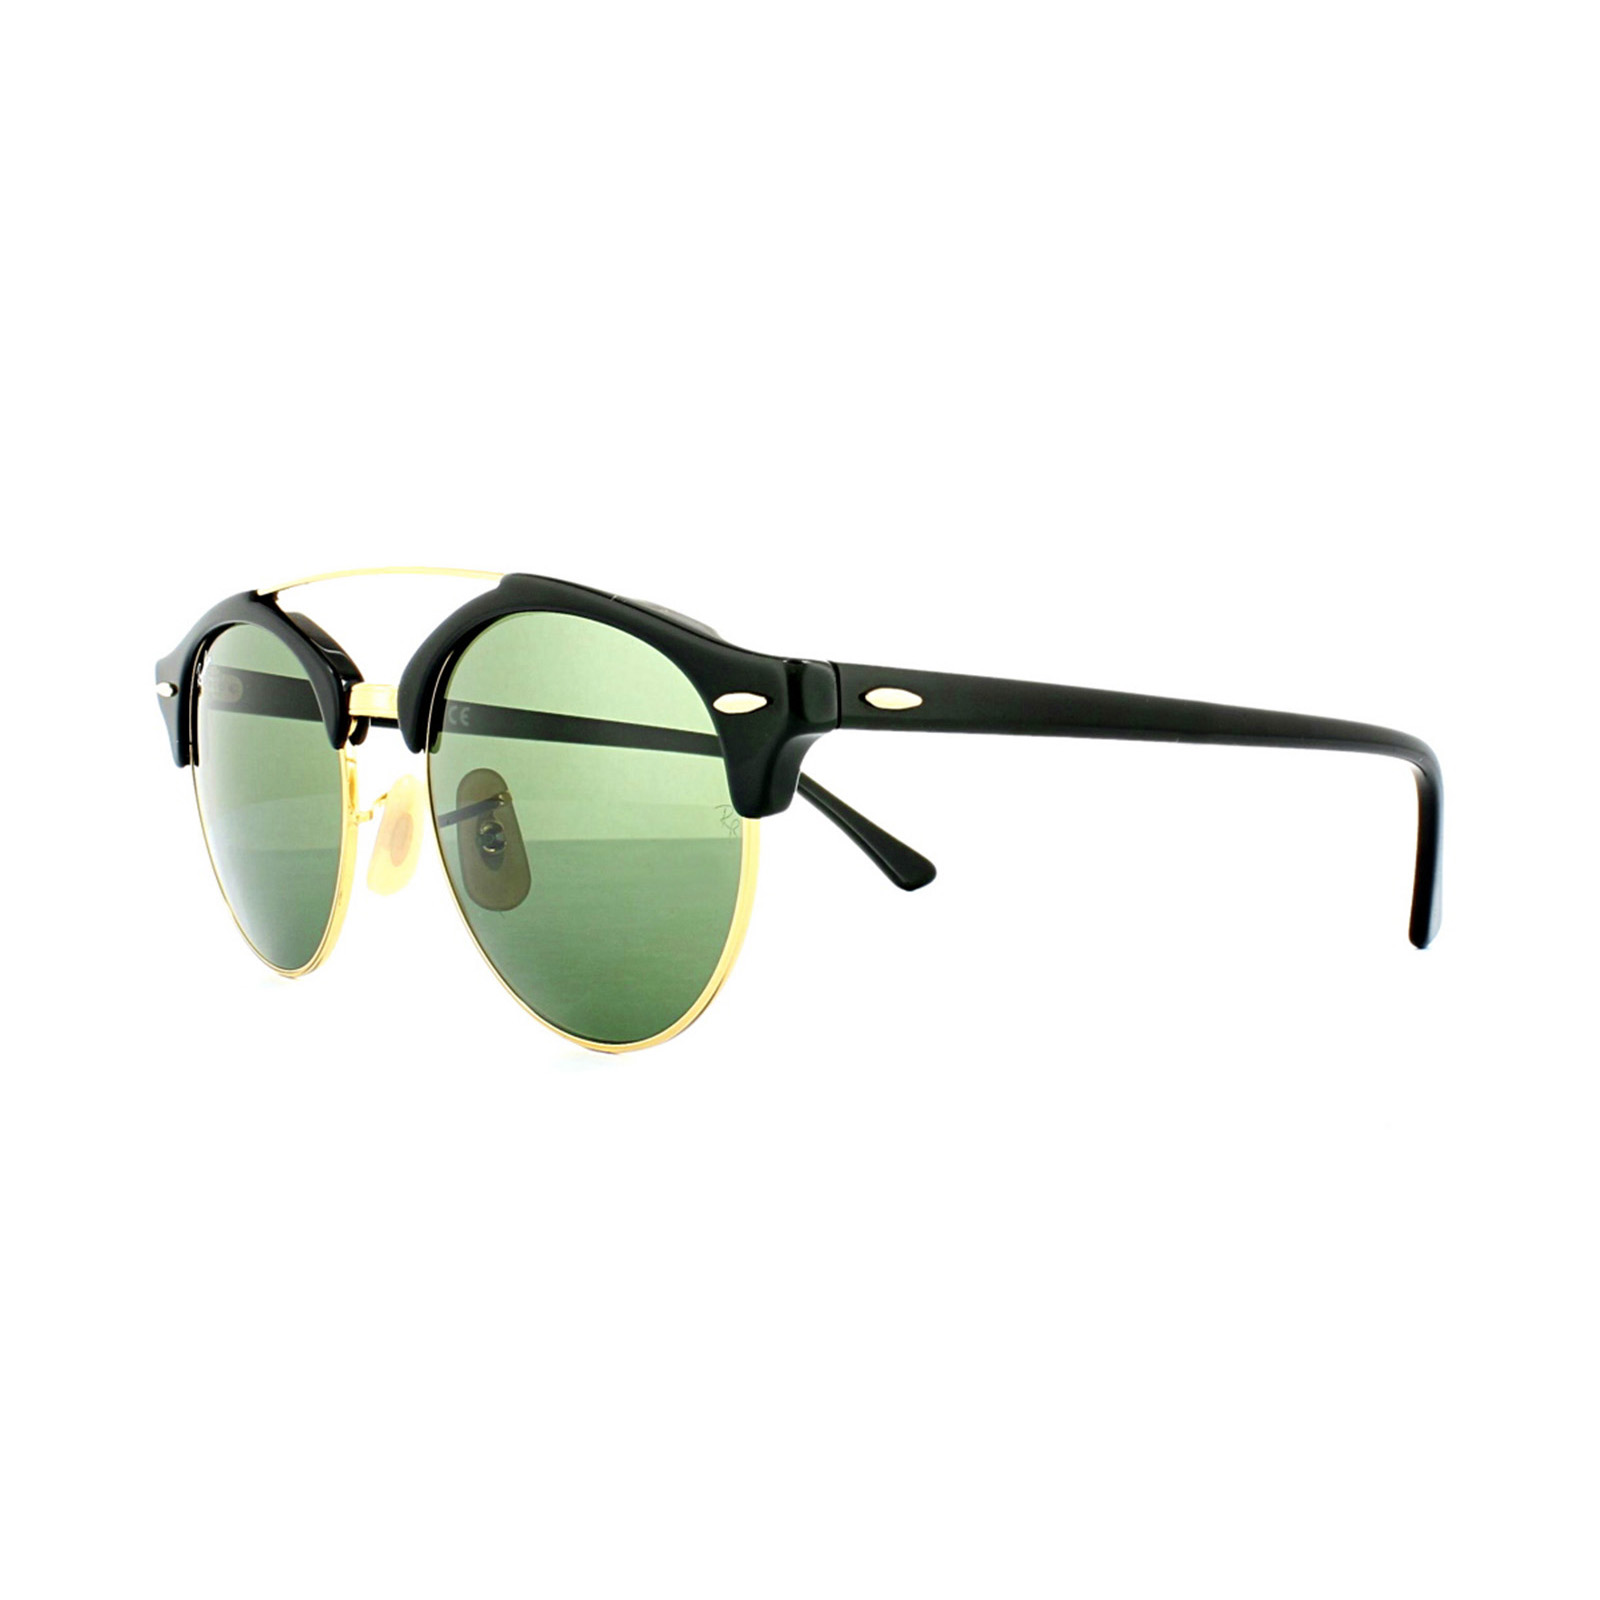 3510209cfe27d8 Cheap Ray-Ban Clubround Double Bridge 4346 Sunglasses - Discounted ...